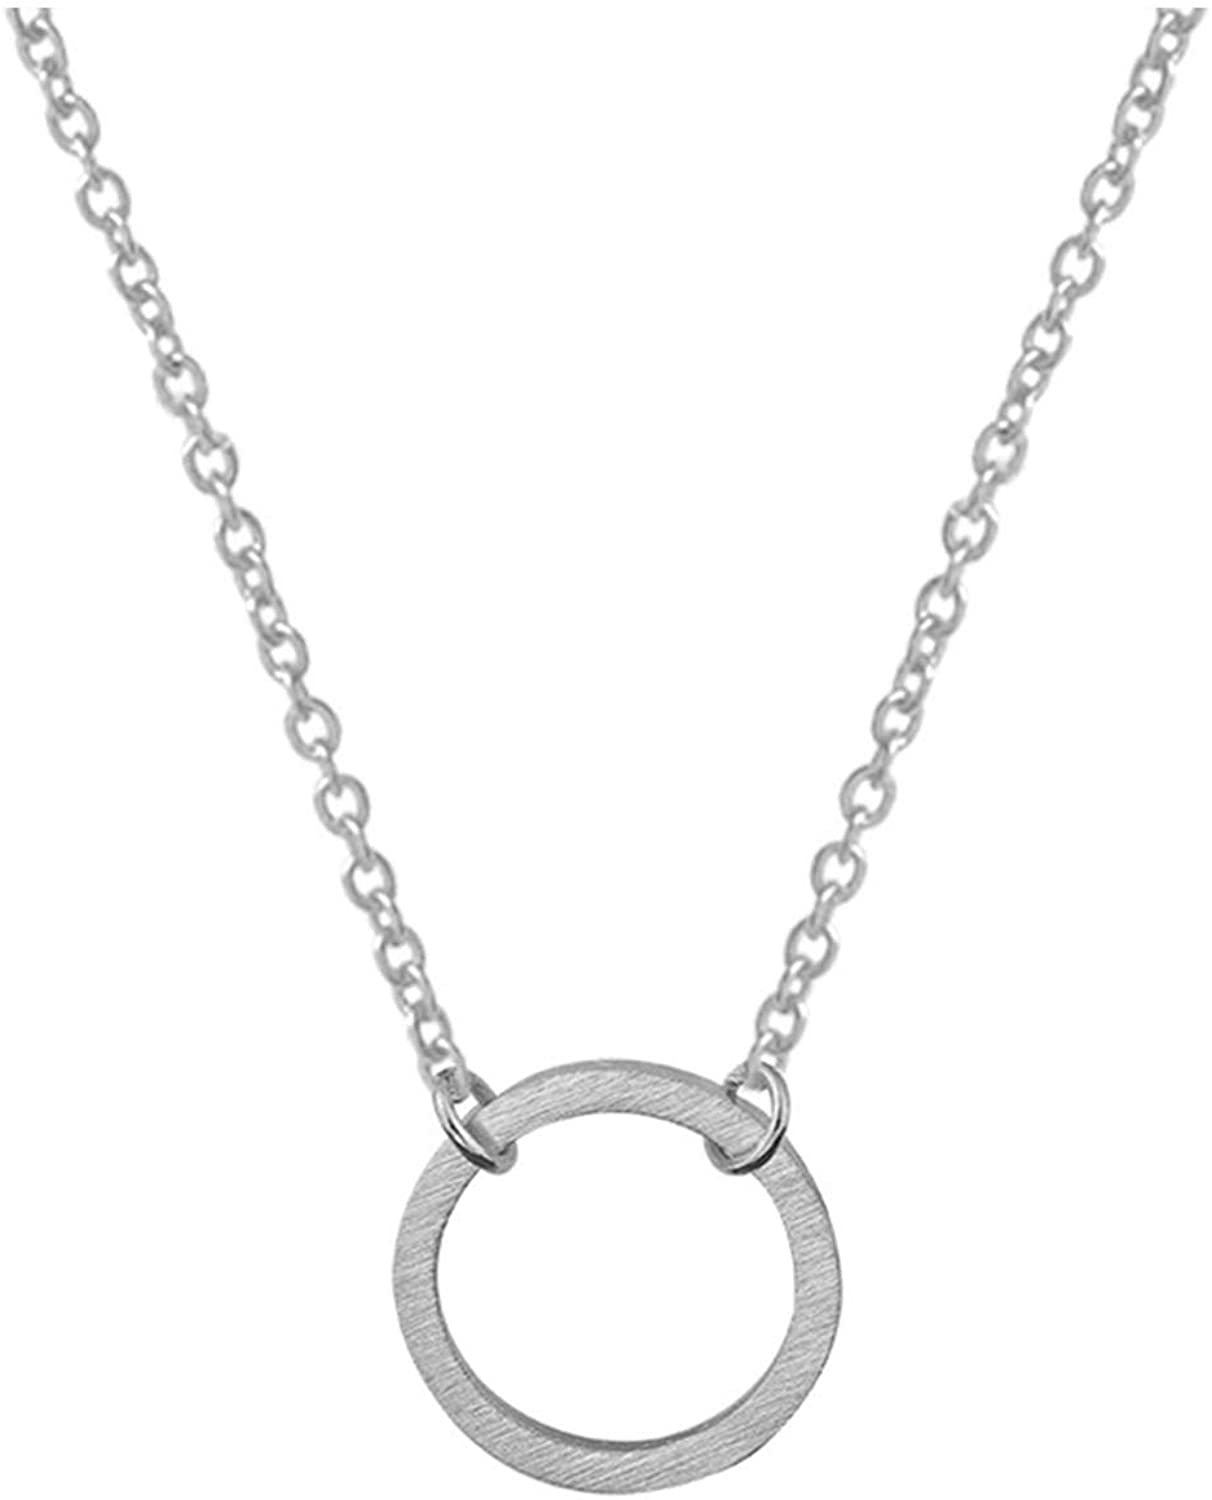 Frodete Fashion Circle Pendant Necklace for Women Minimalist Gold Color Chain Choker Necklaces Jewelry Party Gift